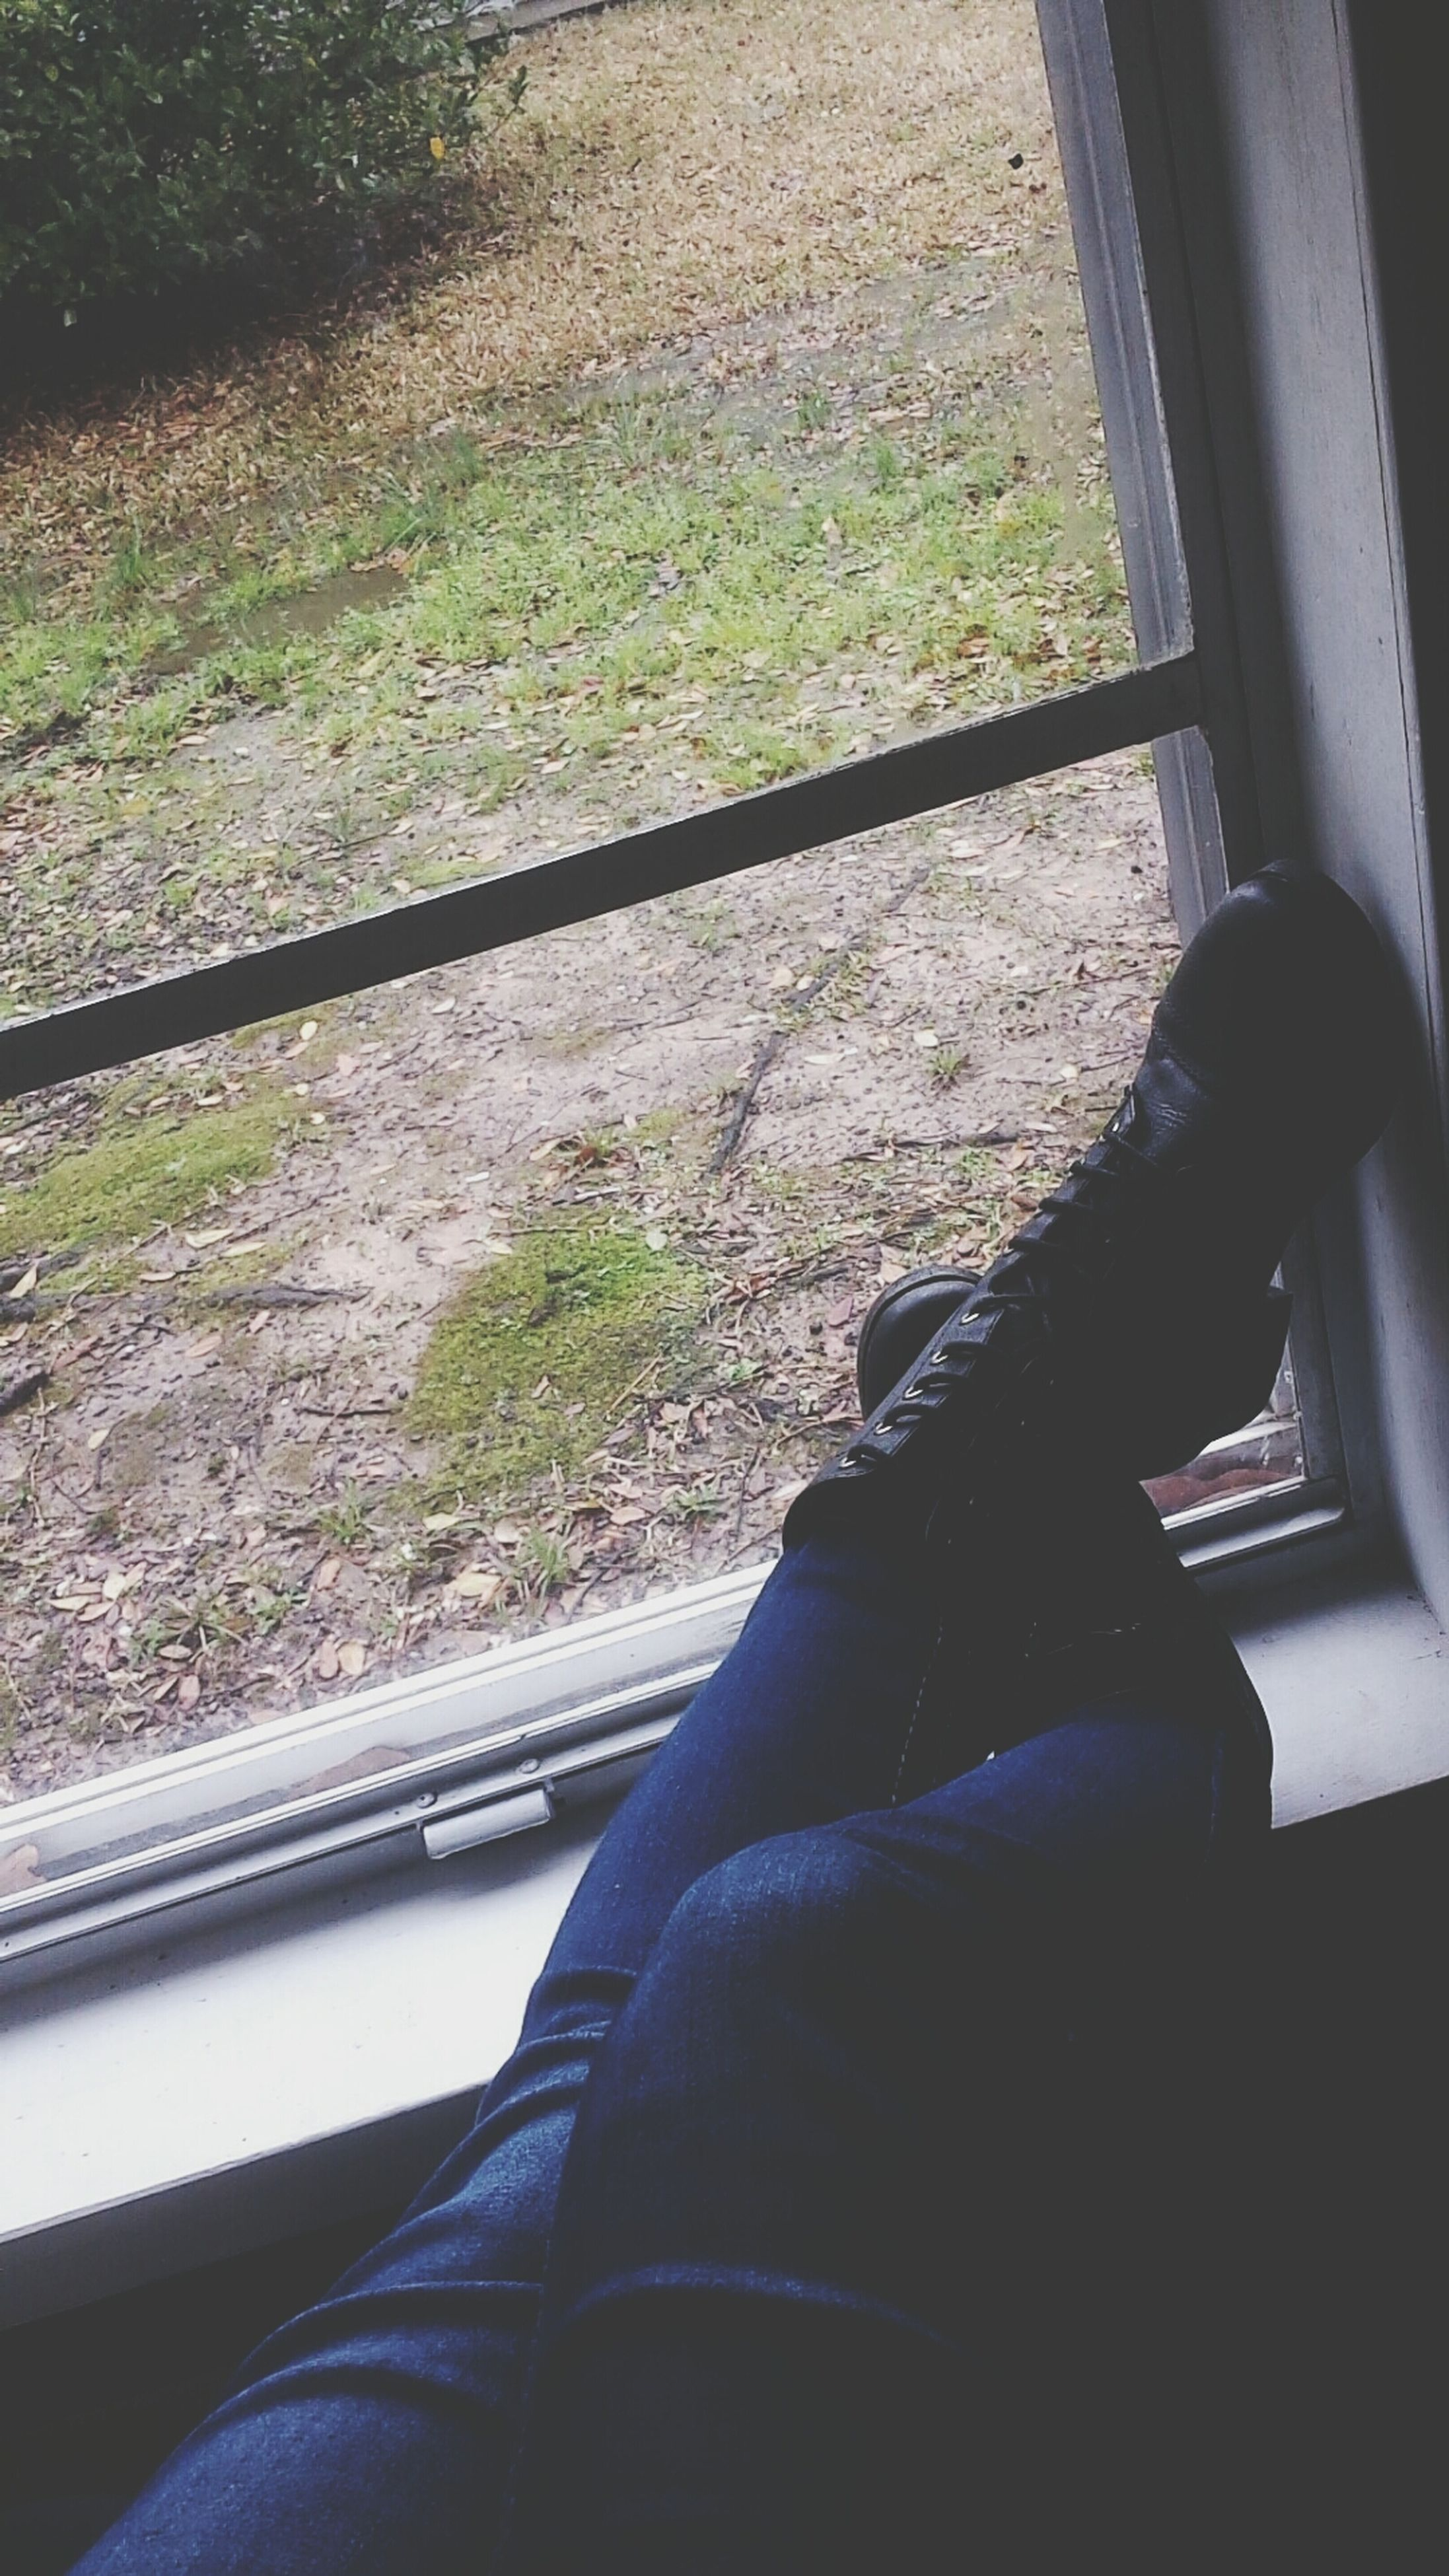 lifestyles, personal perspective, low section, sitting, person, leisure activity, men, relaxation, shoe, window, legs crossed at ankle, part of, day, casual clothing, jeans, technology, sunlight